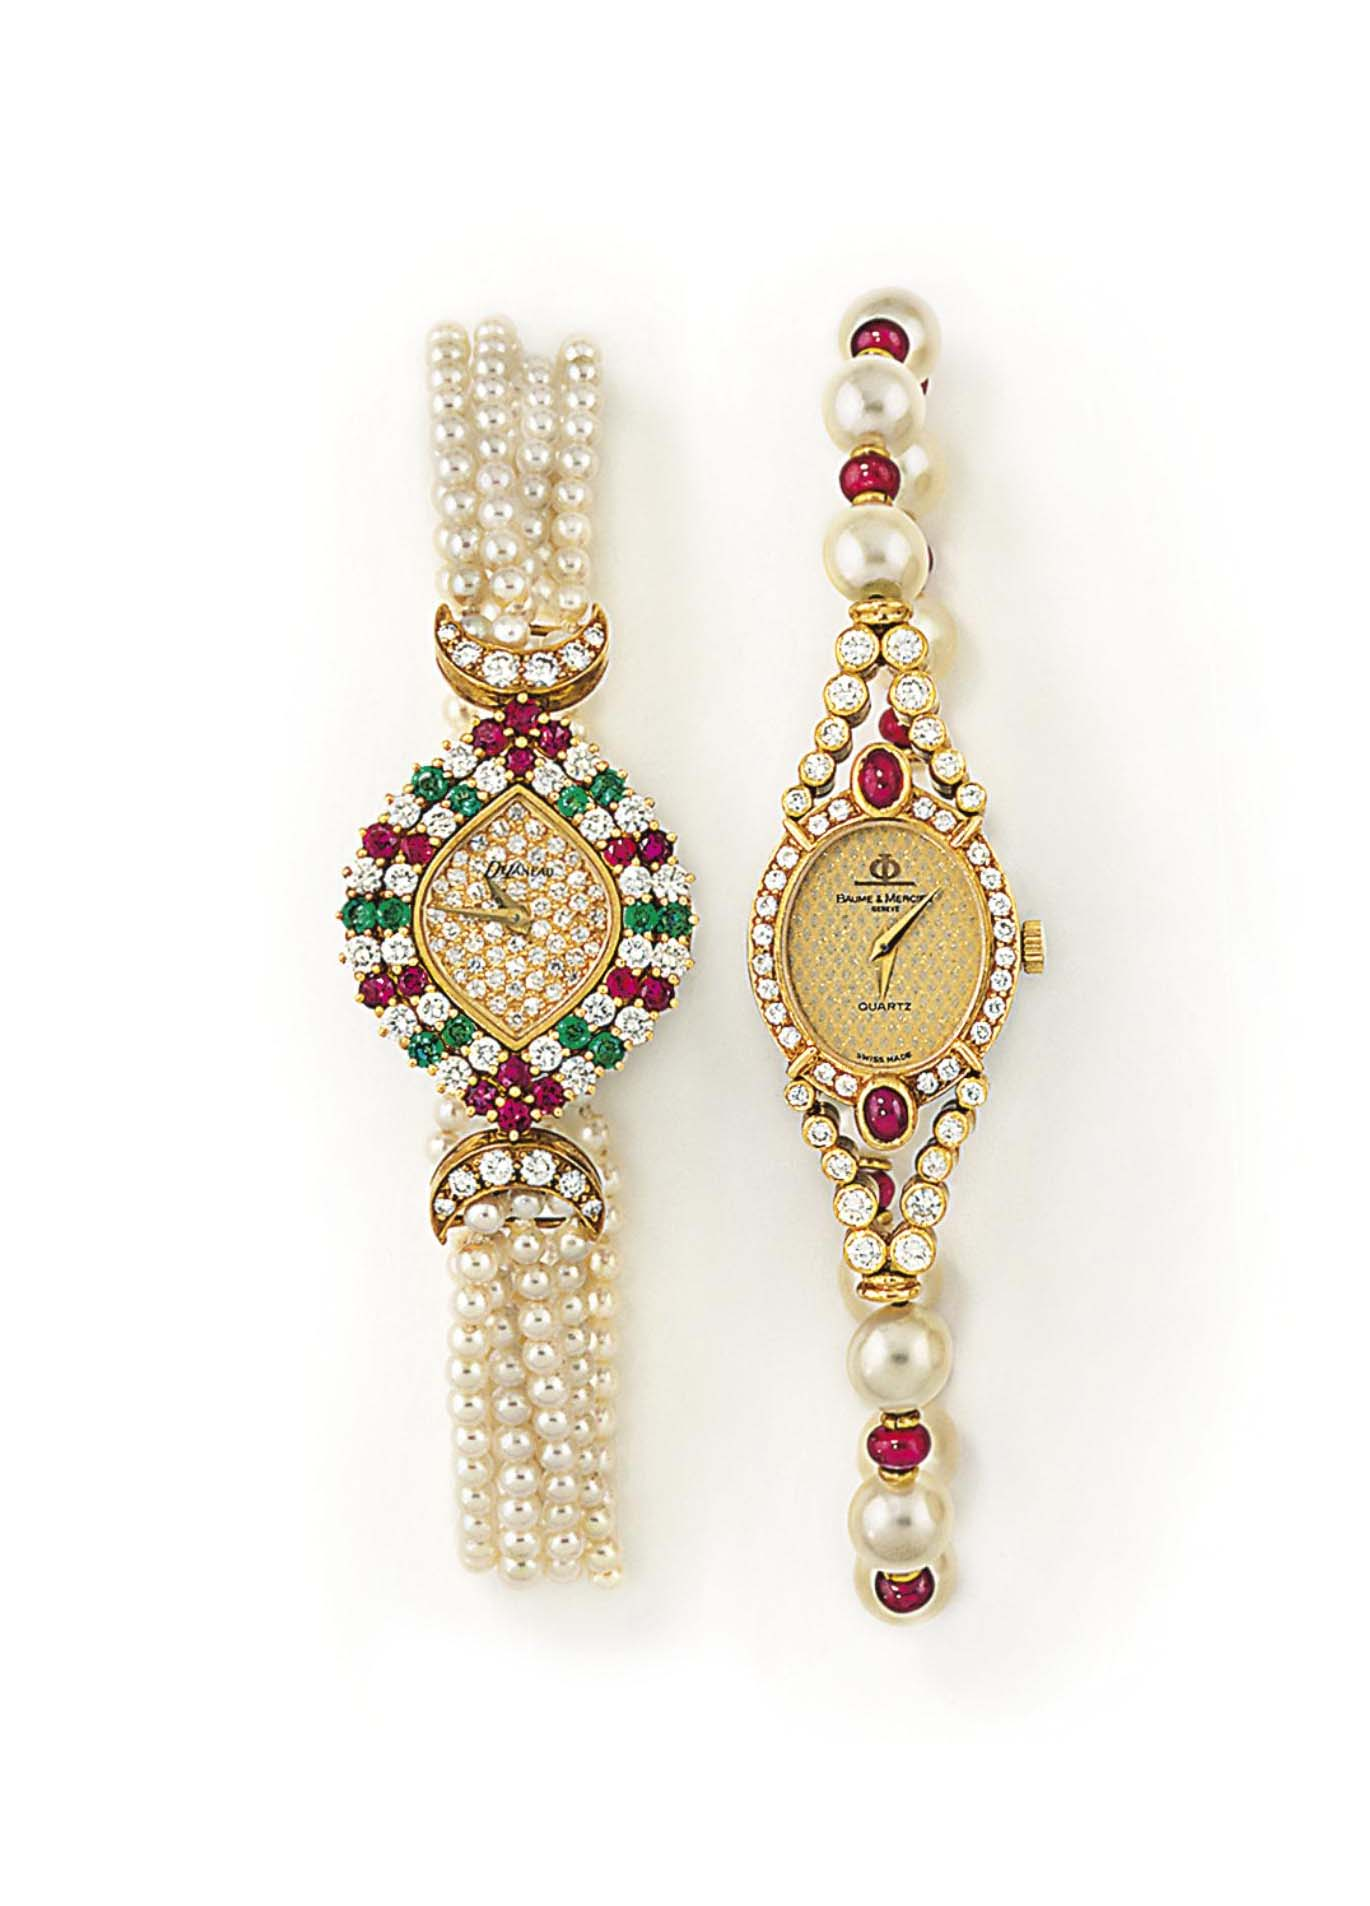 TWO DIAMOND, GEM AND CULTURED PEARL WRISTWATCHES, ONE BY BAUME & MERCIER, ONE BY DELANEAU